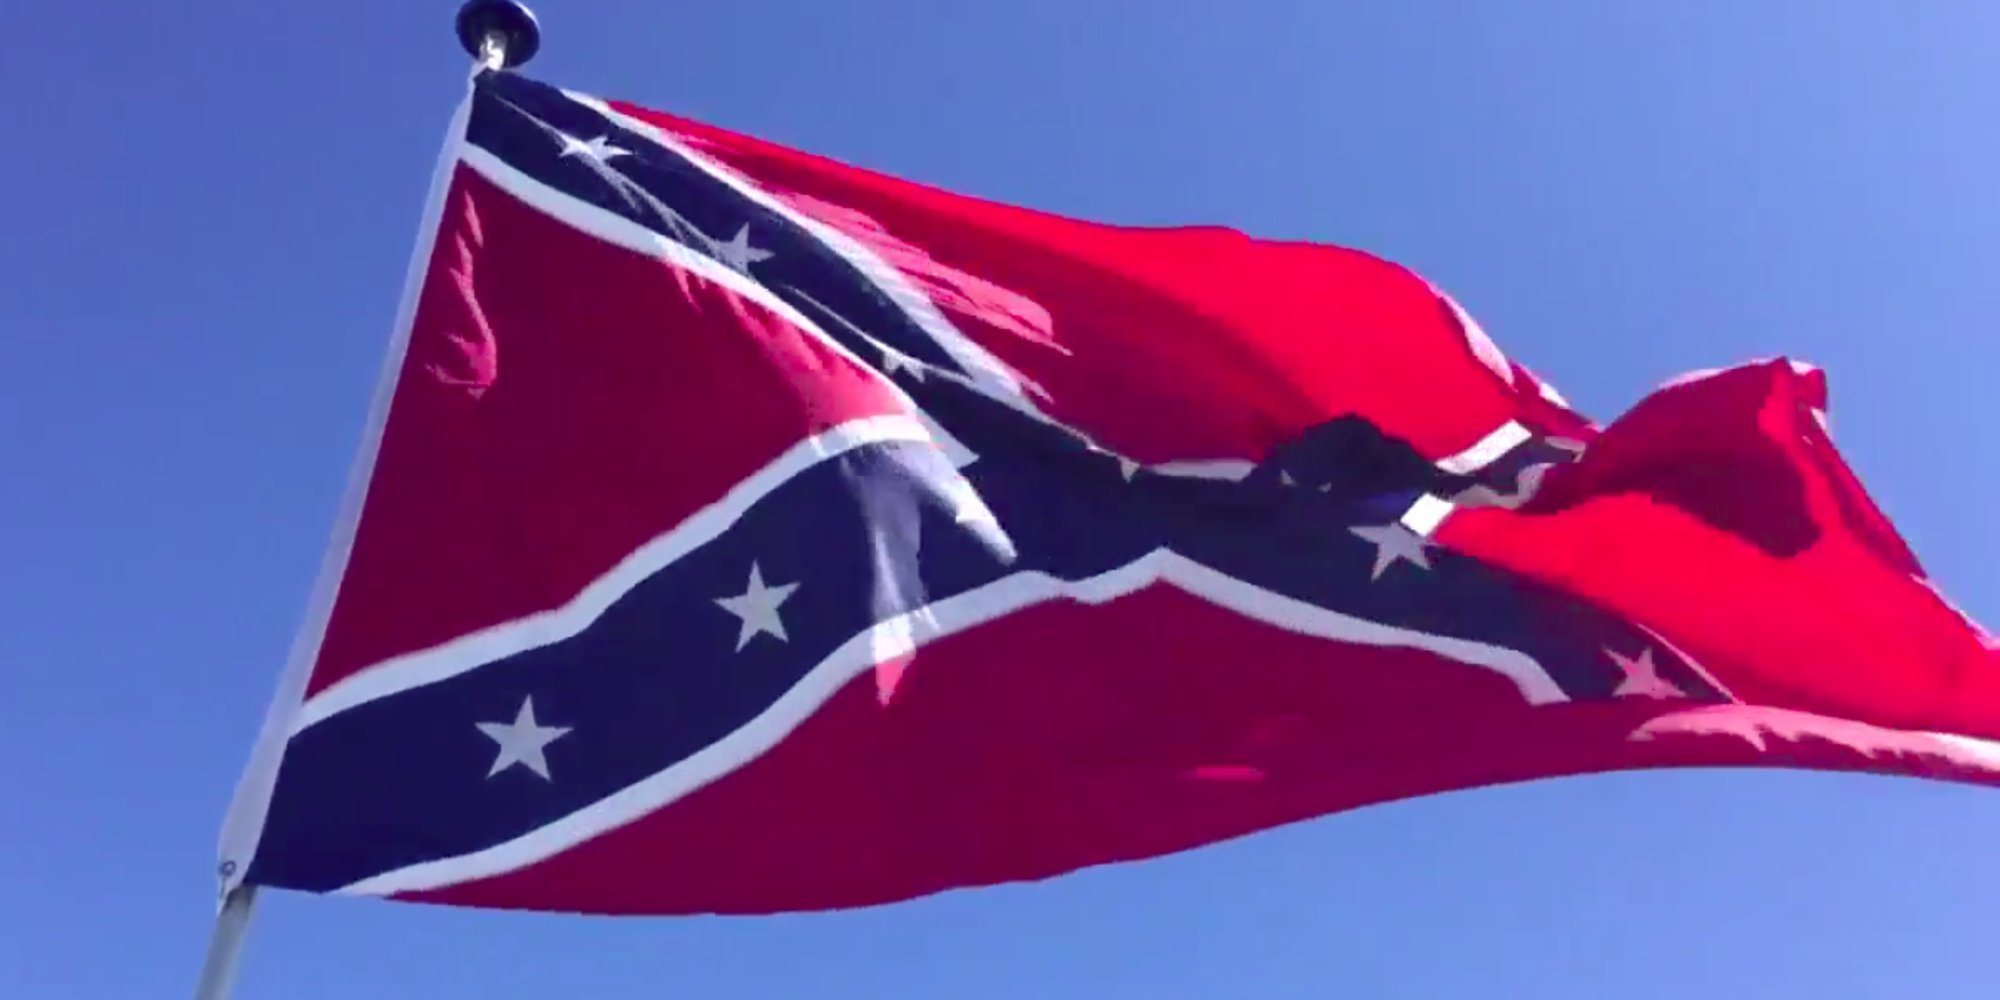 Confederate flag appears outside NCAA tournament in South Carolina https://t.co/haiHudXmgN https://t.co/zMi8eJbG5Q